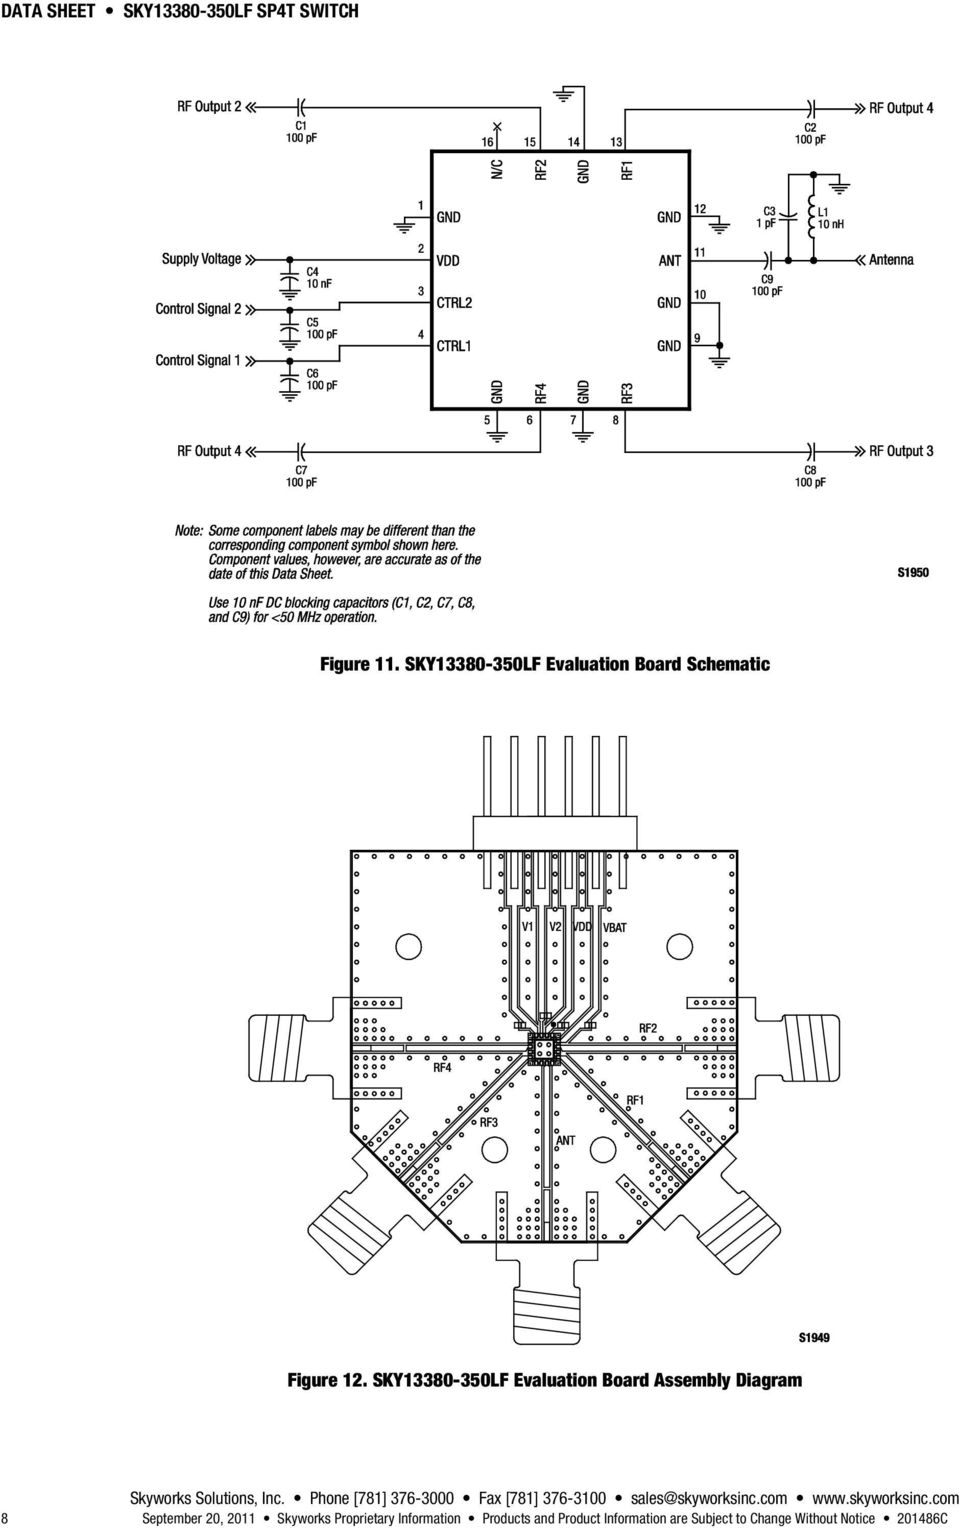 SKY13380-350LF Evaluation Board Assembly Diagram 8 September